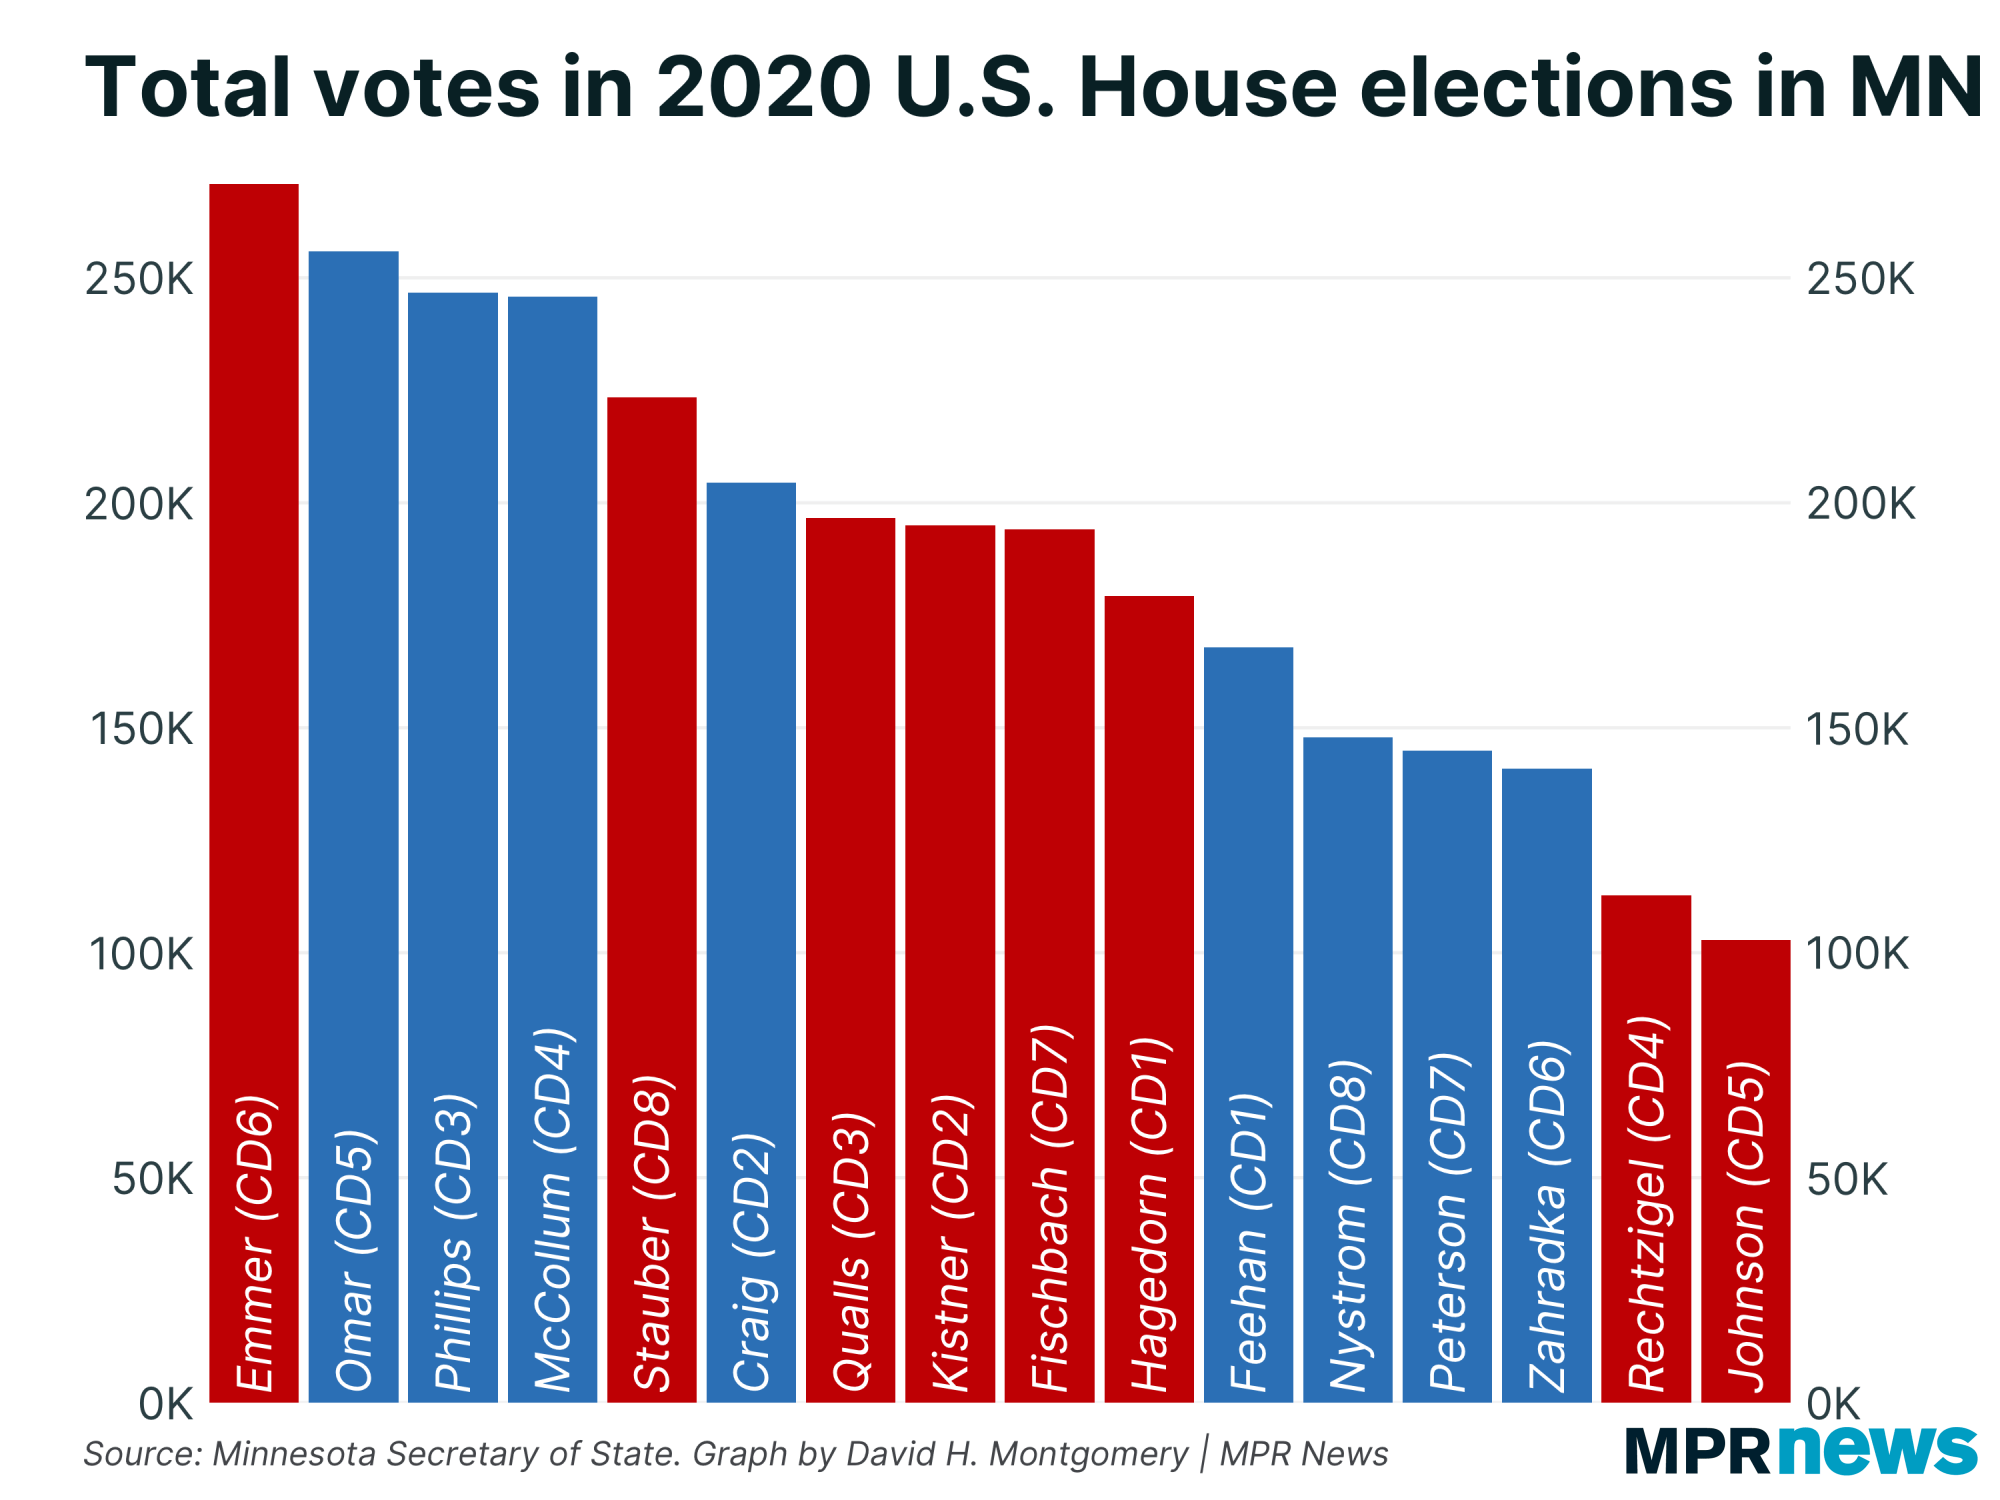 Chart of votes for 2020 U.S. House candidates